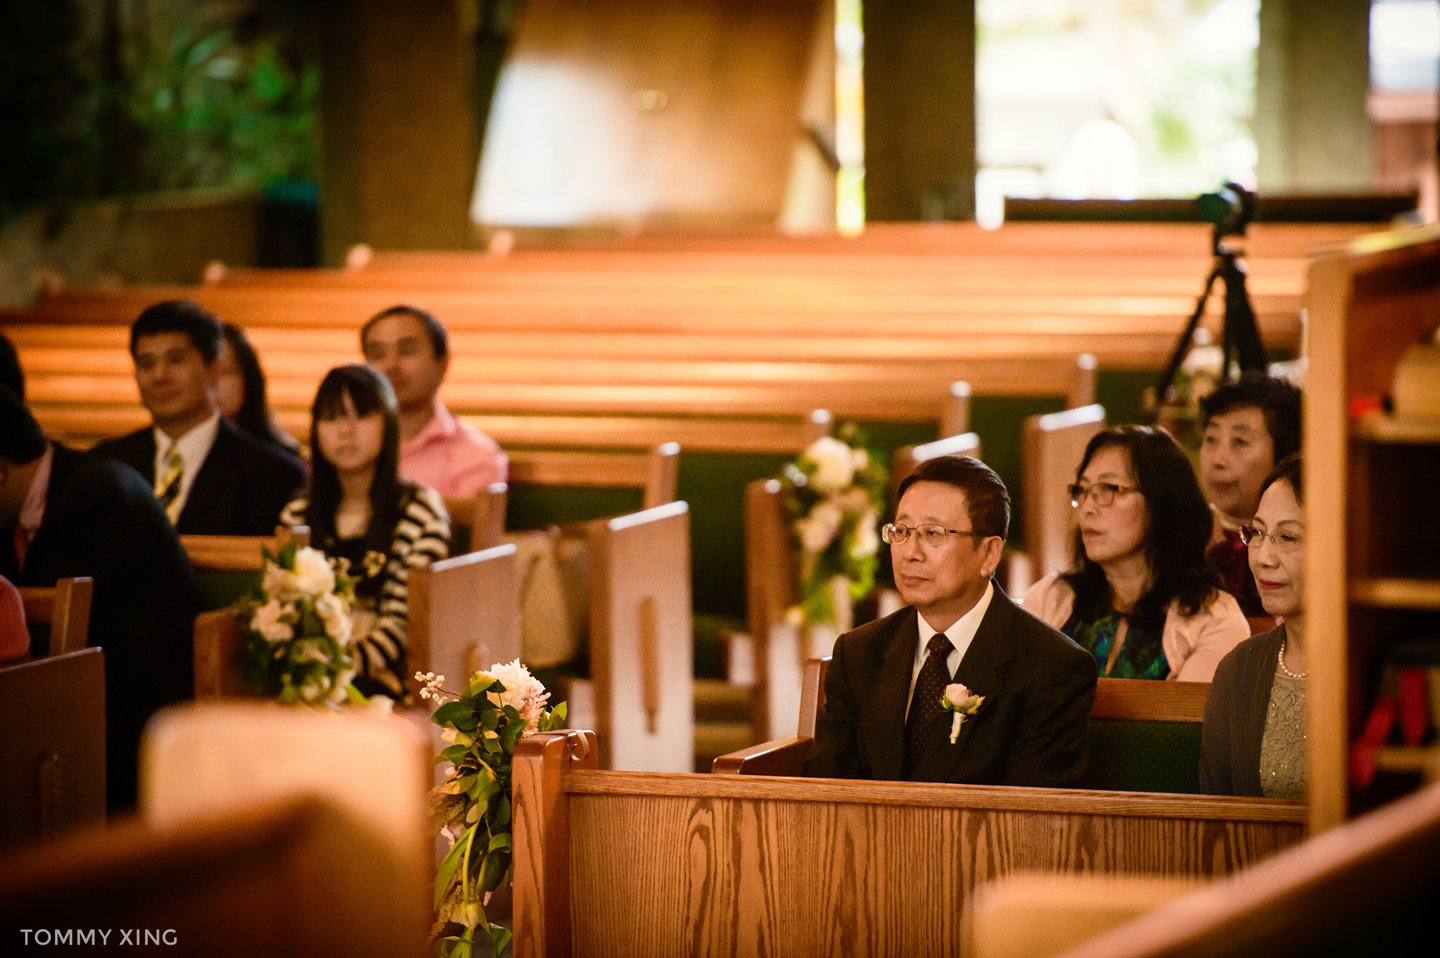 San Francisco Wedding Photography Valley Presbyterian Church WEDDING Tommy Xing Photography 洛杉矶旧金山婚礼婚纱照摄影师076.jpg